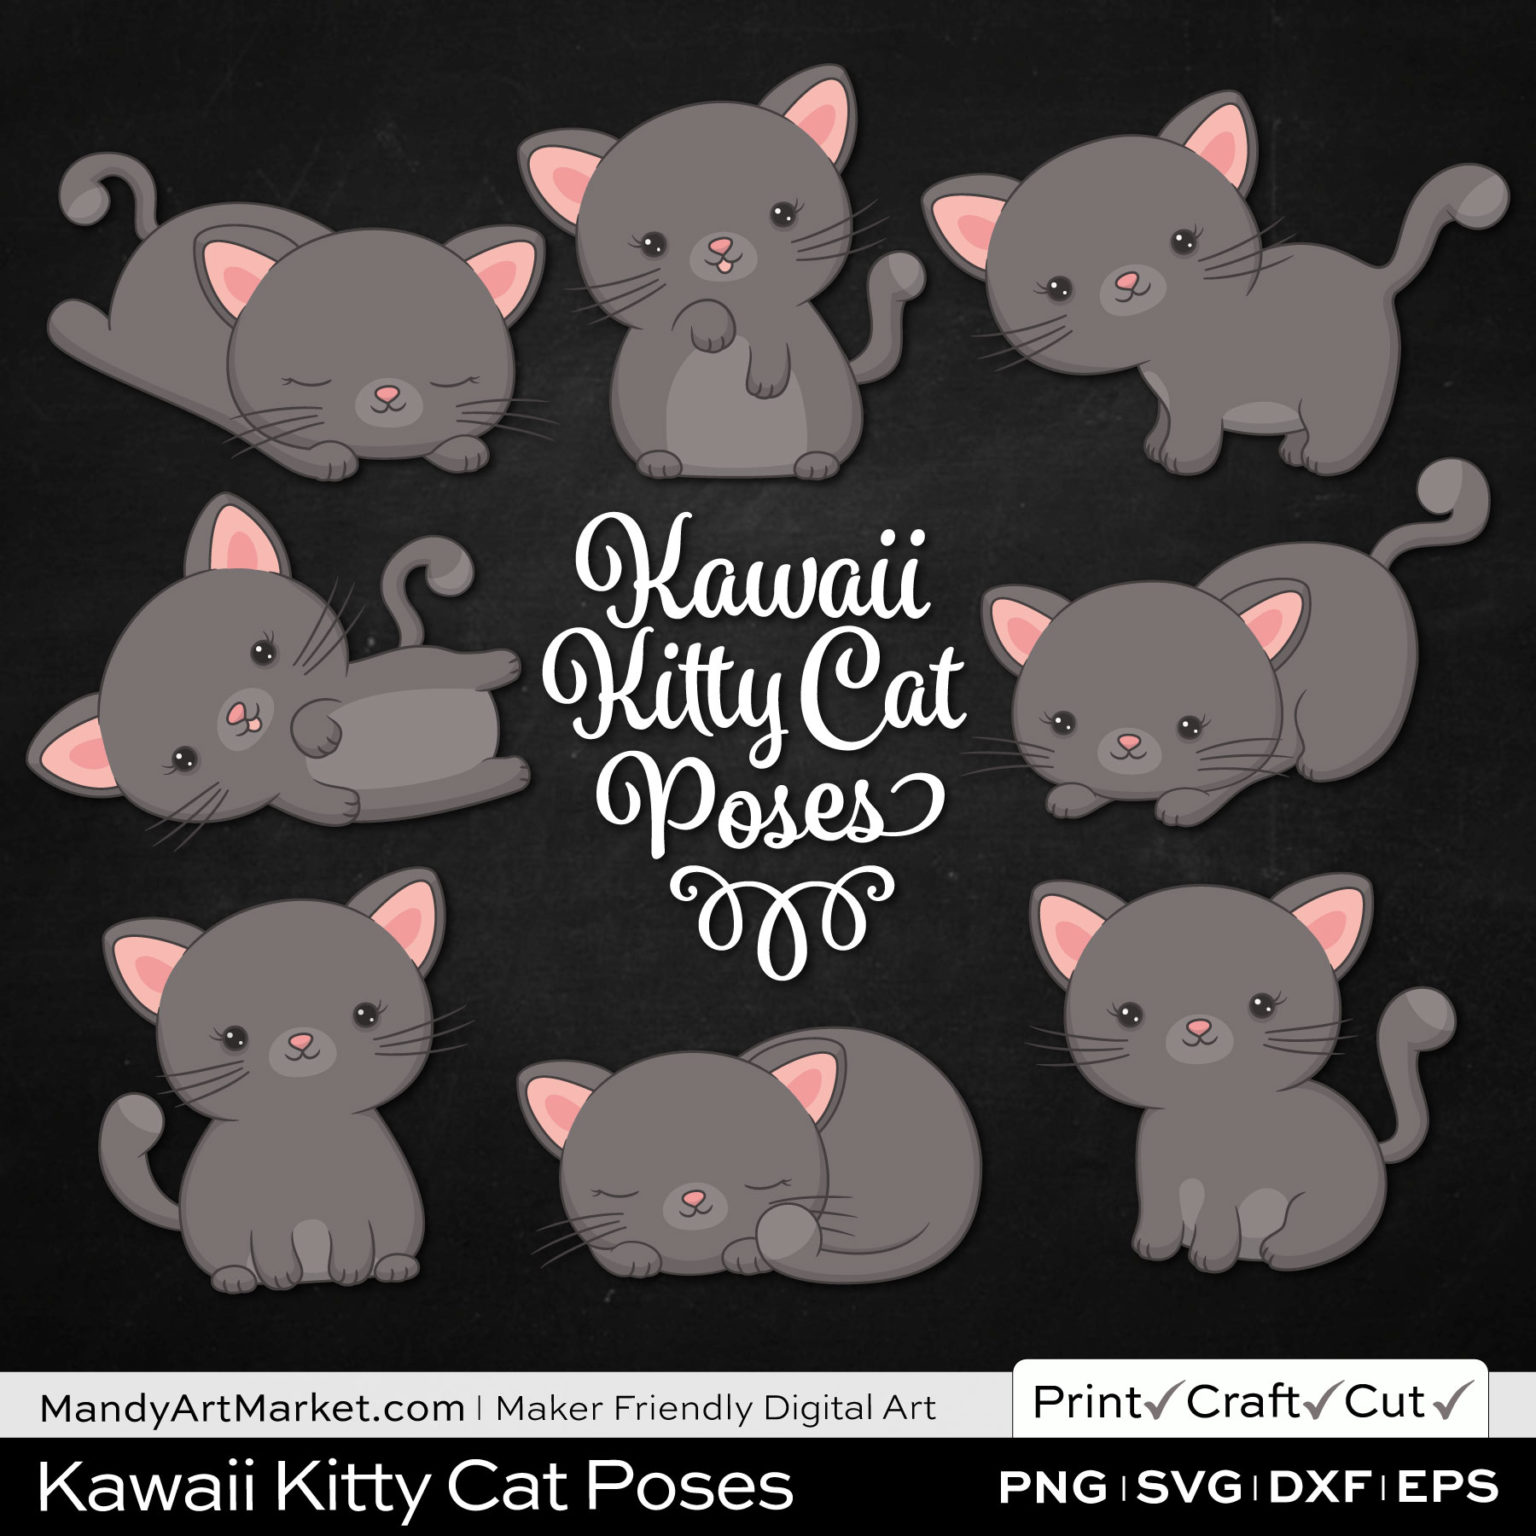 Pewter Gray Kawaii Kitty Cat Poses Clipart on Black Background